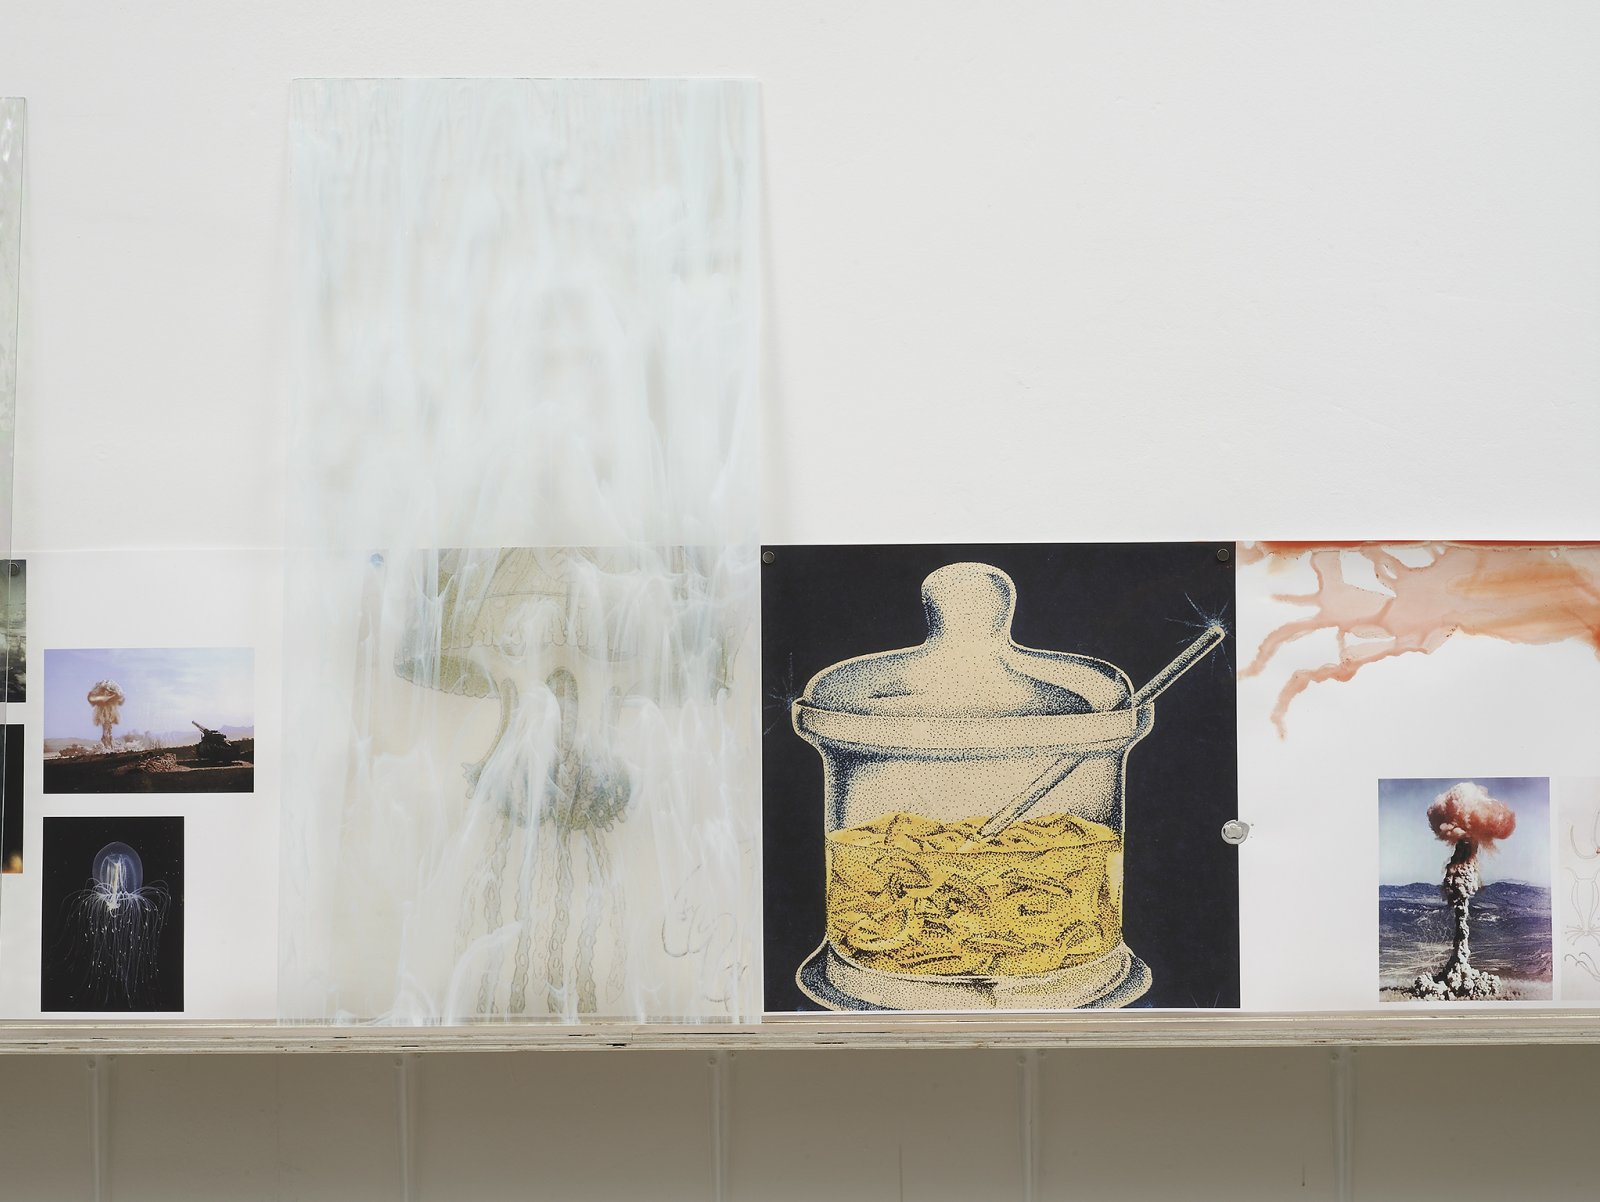 Christina Mackie, The Roiling (detail), 2012, mixed media, dimensions variable. Installation view, Painting the Weights, Chisehale Gallery, London, UK, 2012 by Christina Mackie